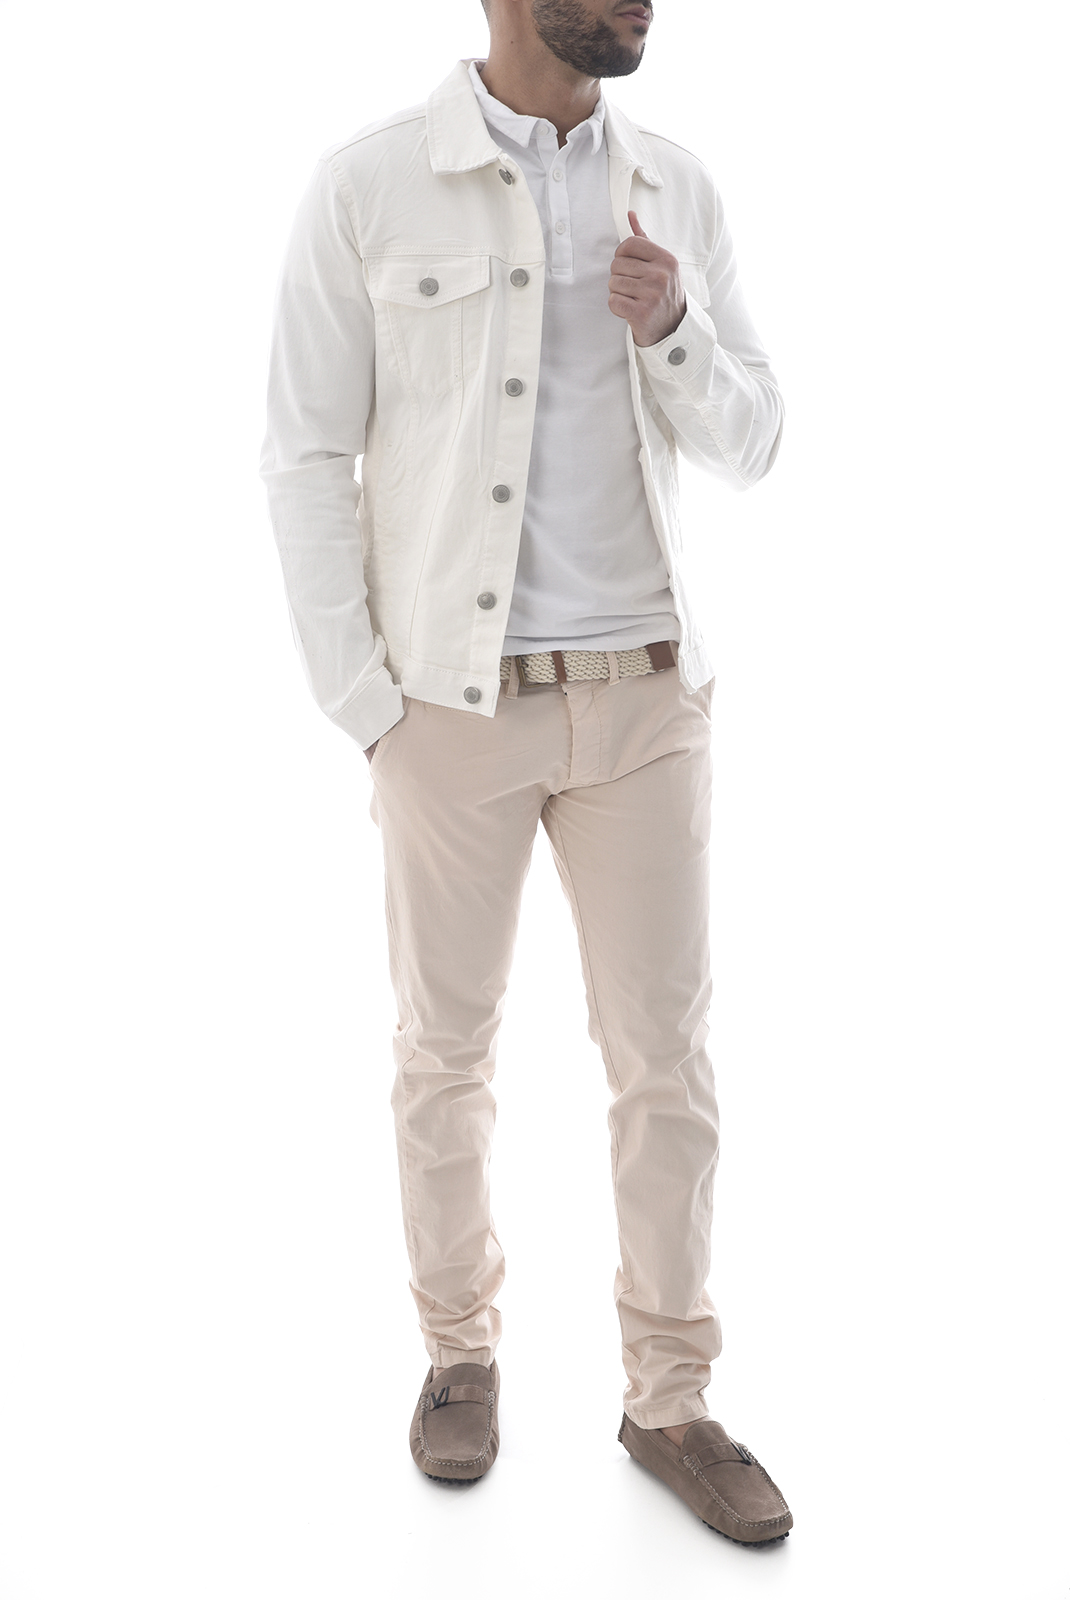 Pantalons chino/citadin  Backlight ALLEN ROSE PALE